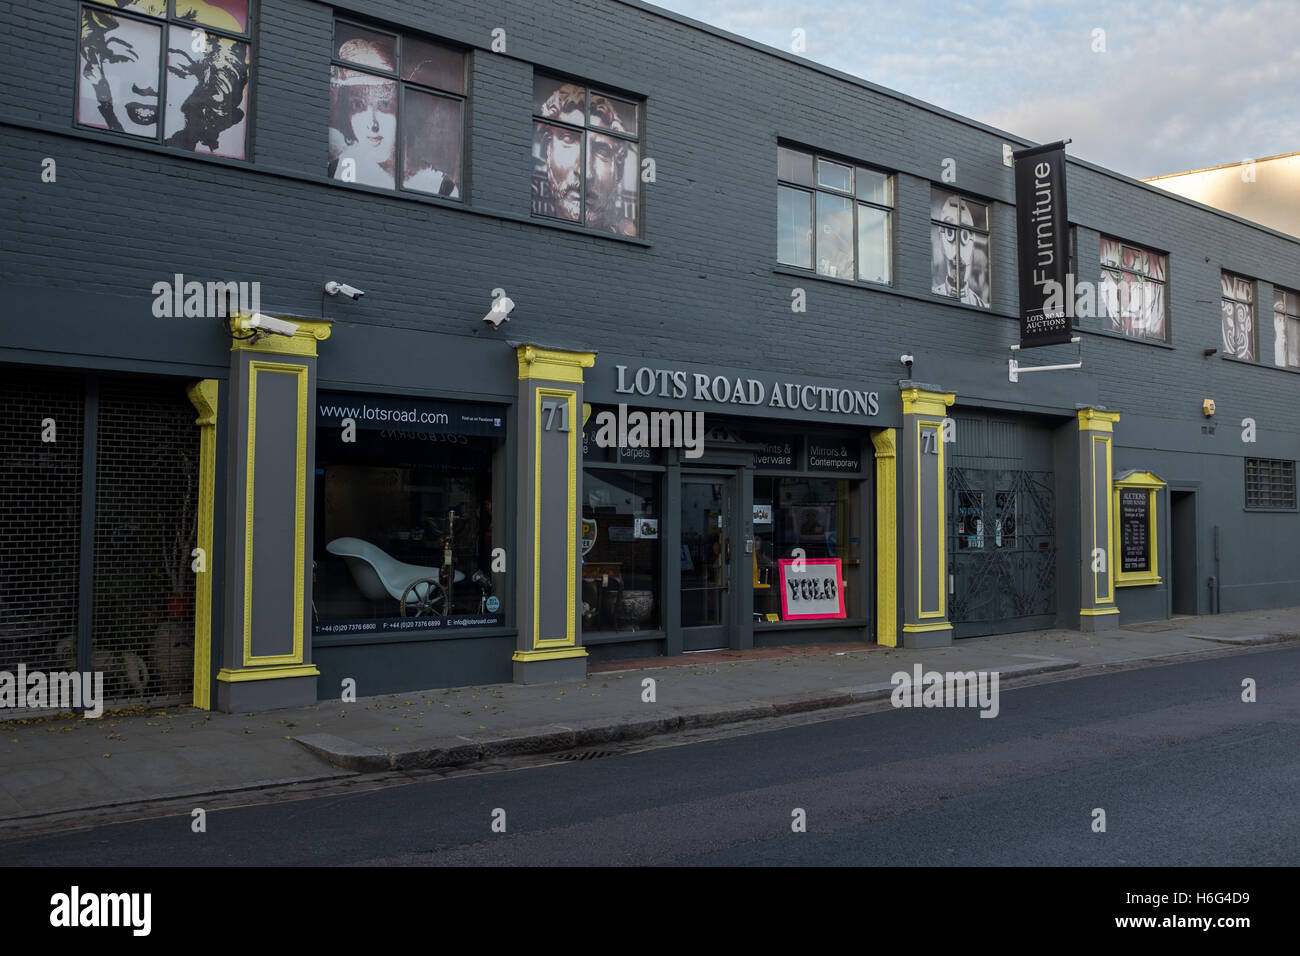 Exterior of Lots Road Auctions, Chelsea, London - Stock Image